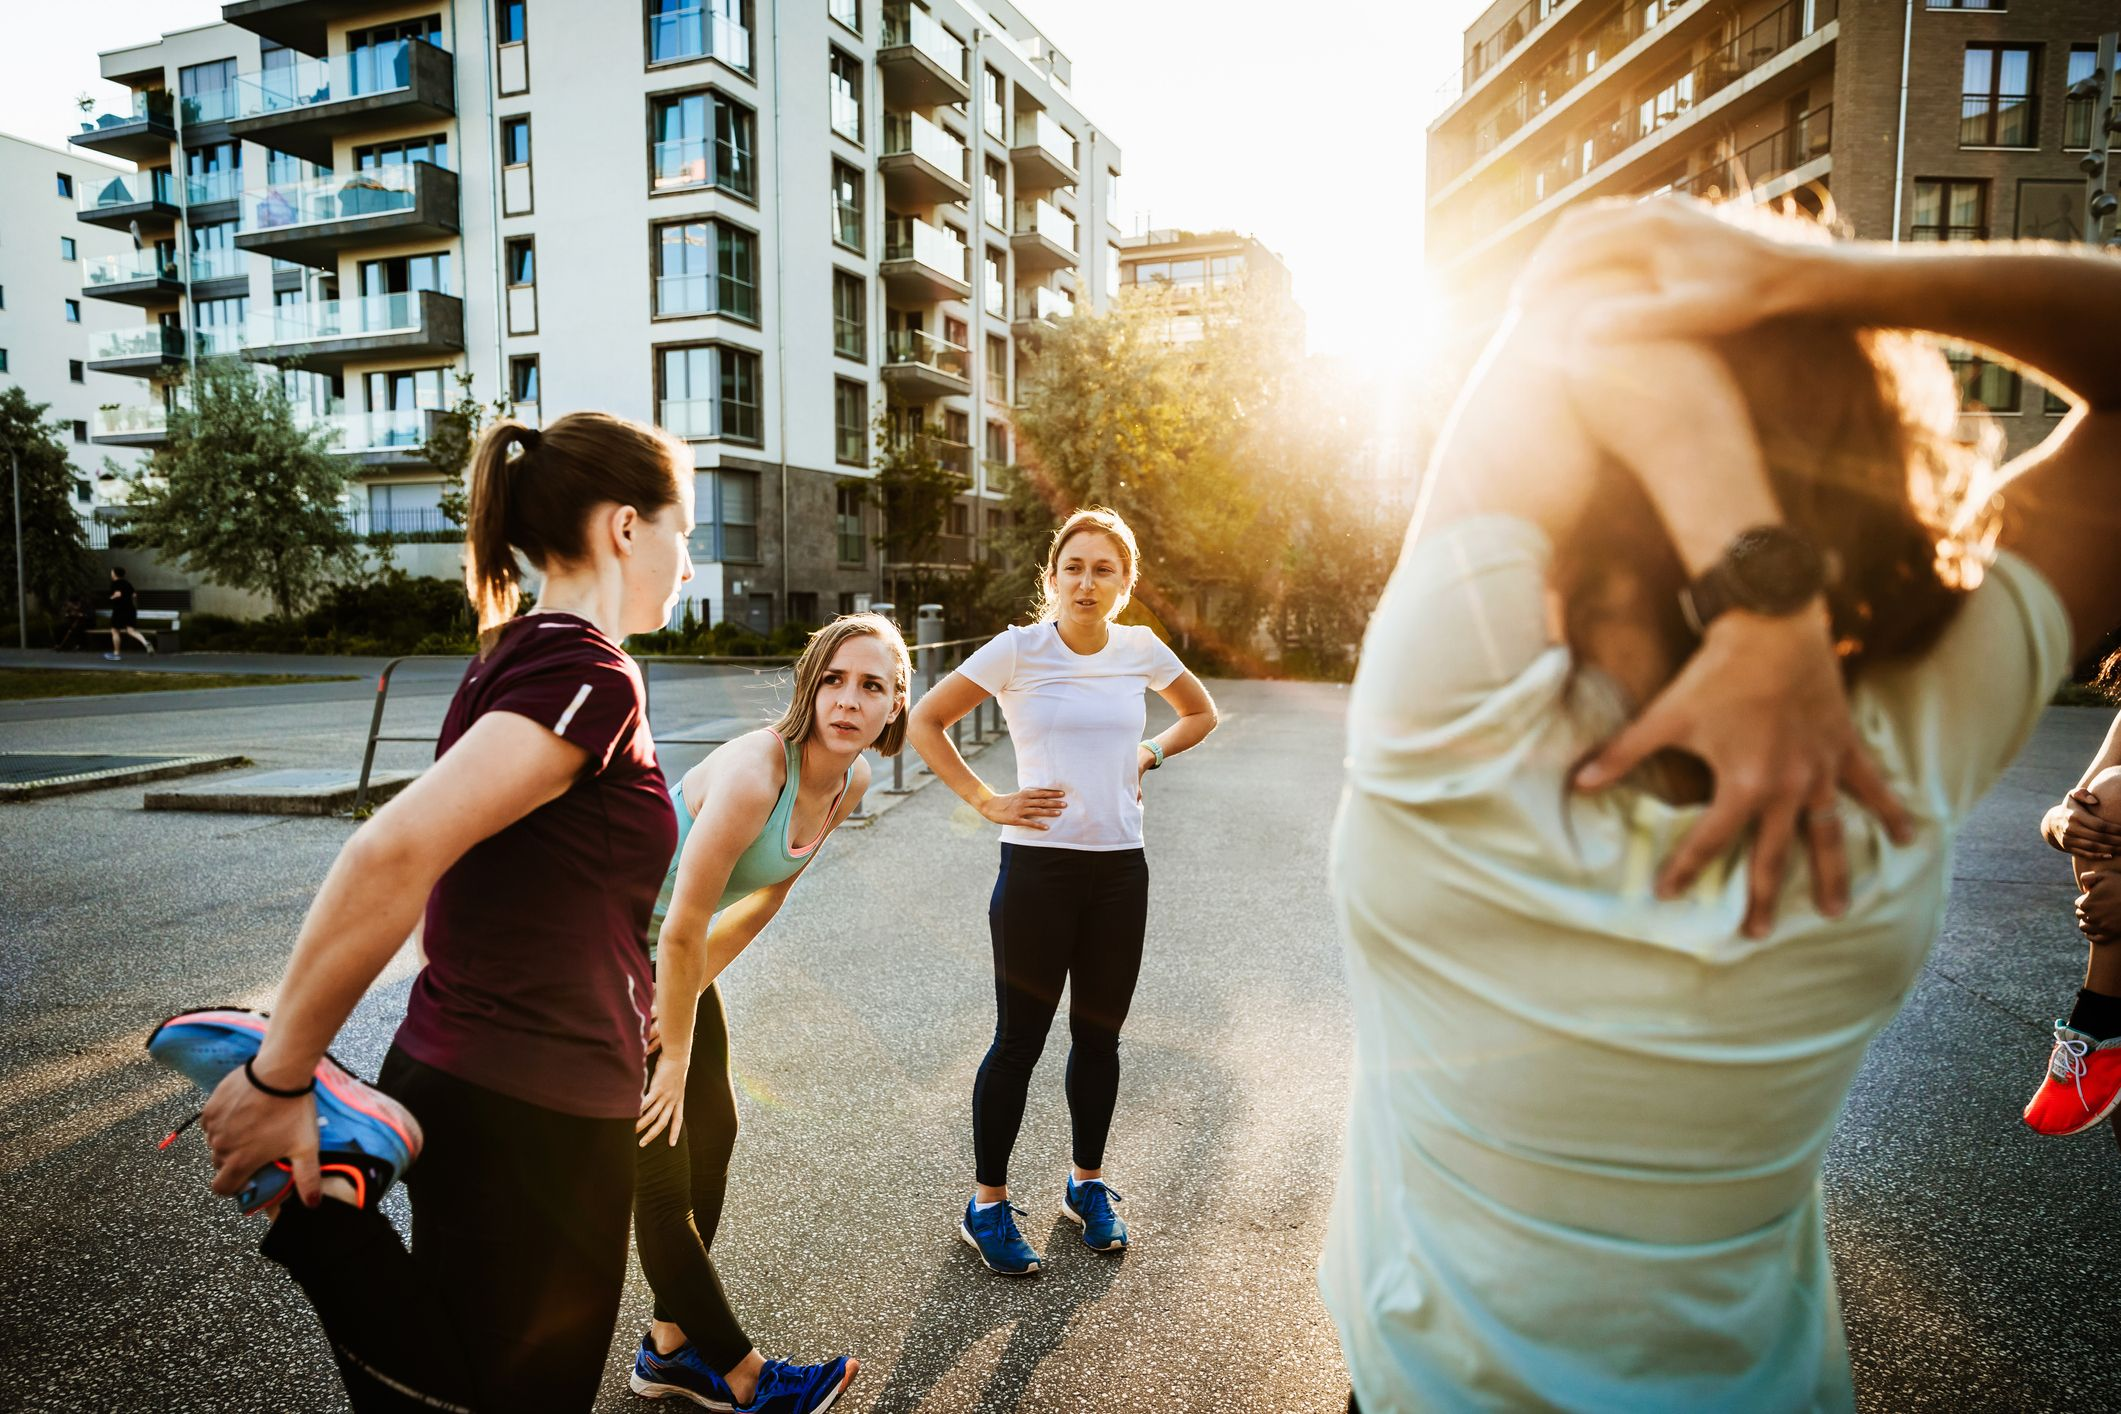 Women: Here's Why You Should Talk About Your Scariest Running Moment